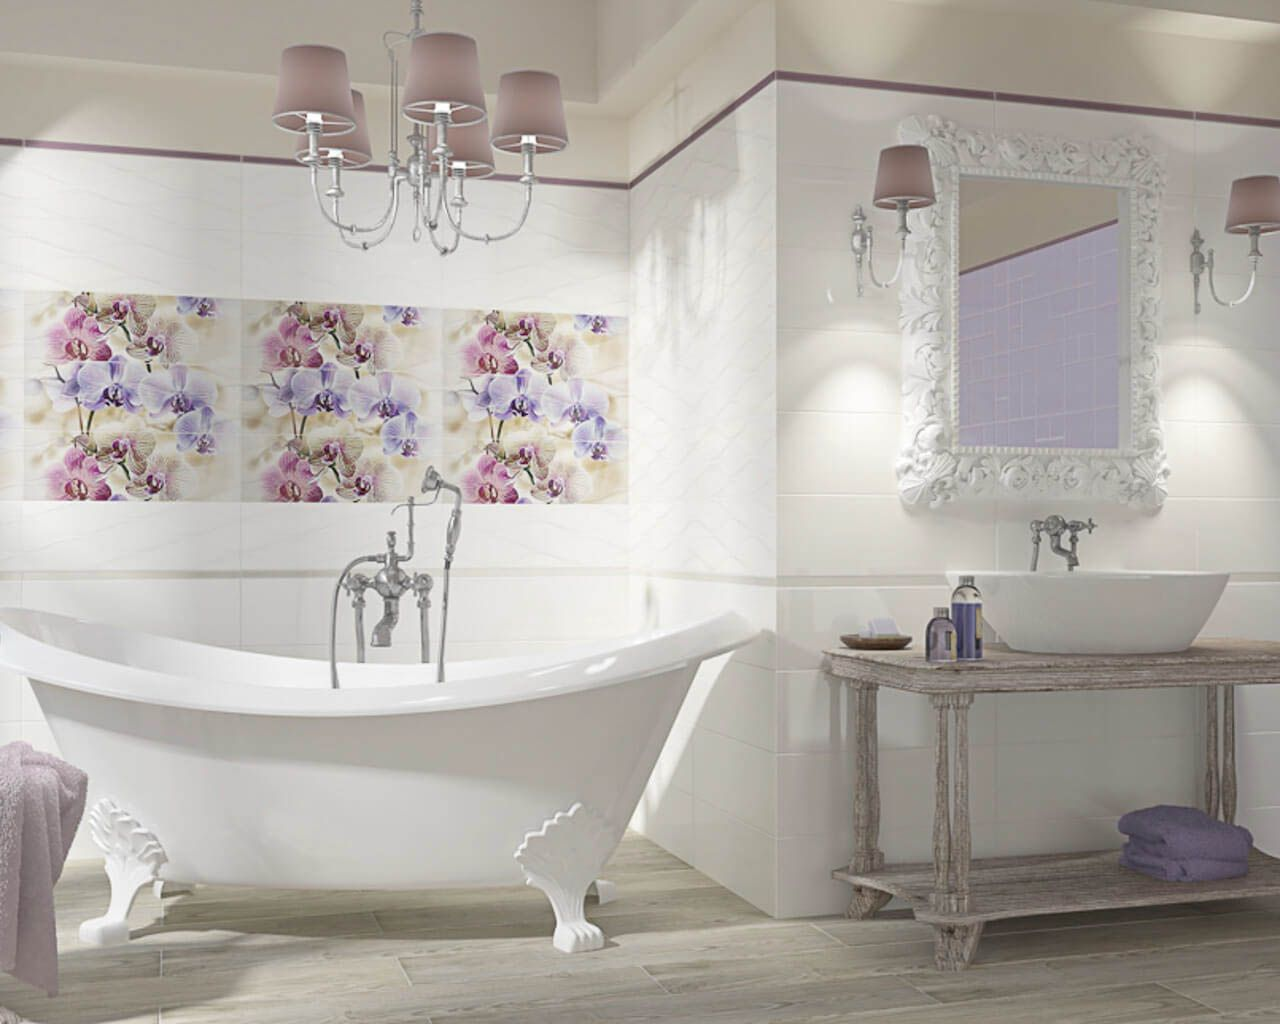 White and flowers in a romantic bathroom with a free-standing bathtub